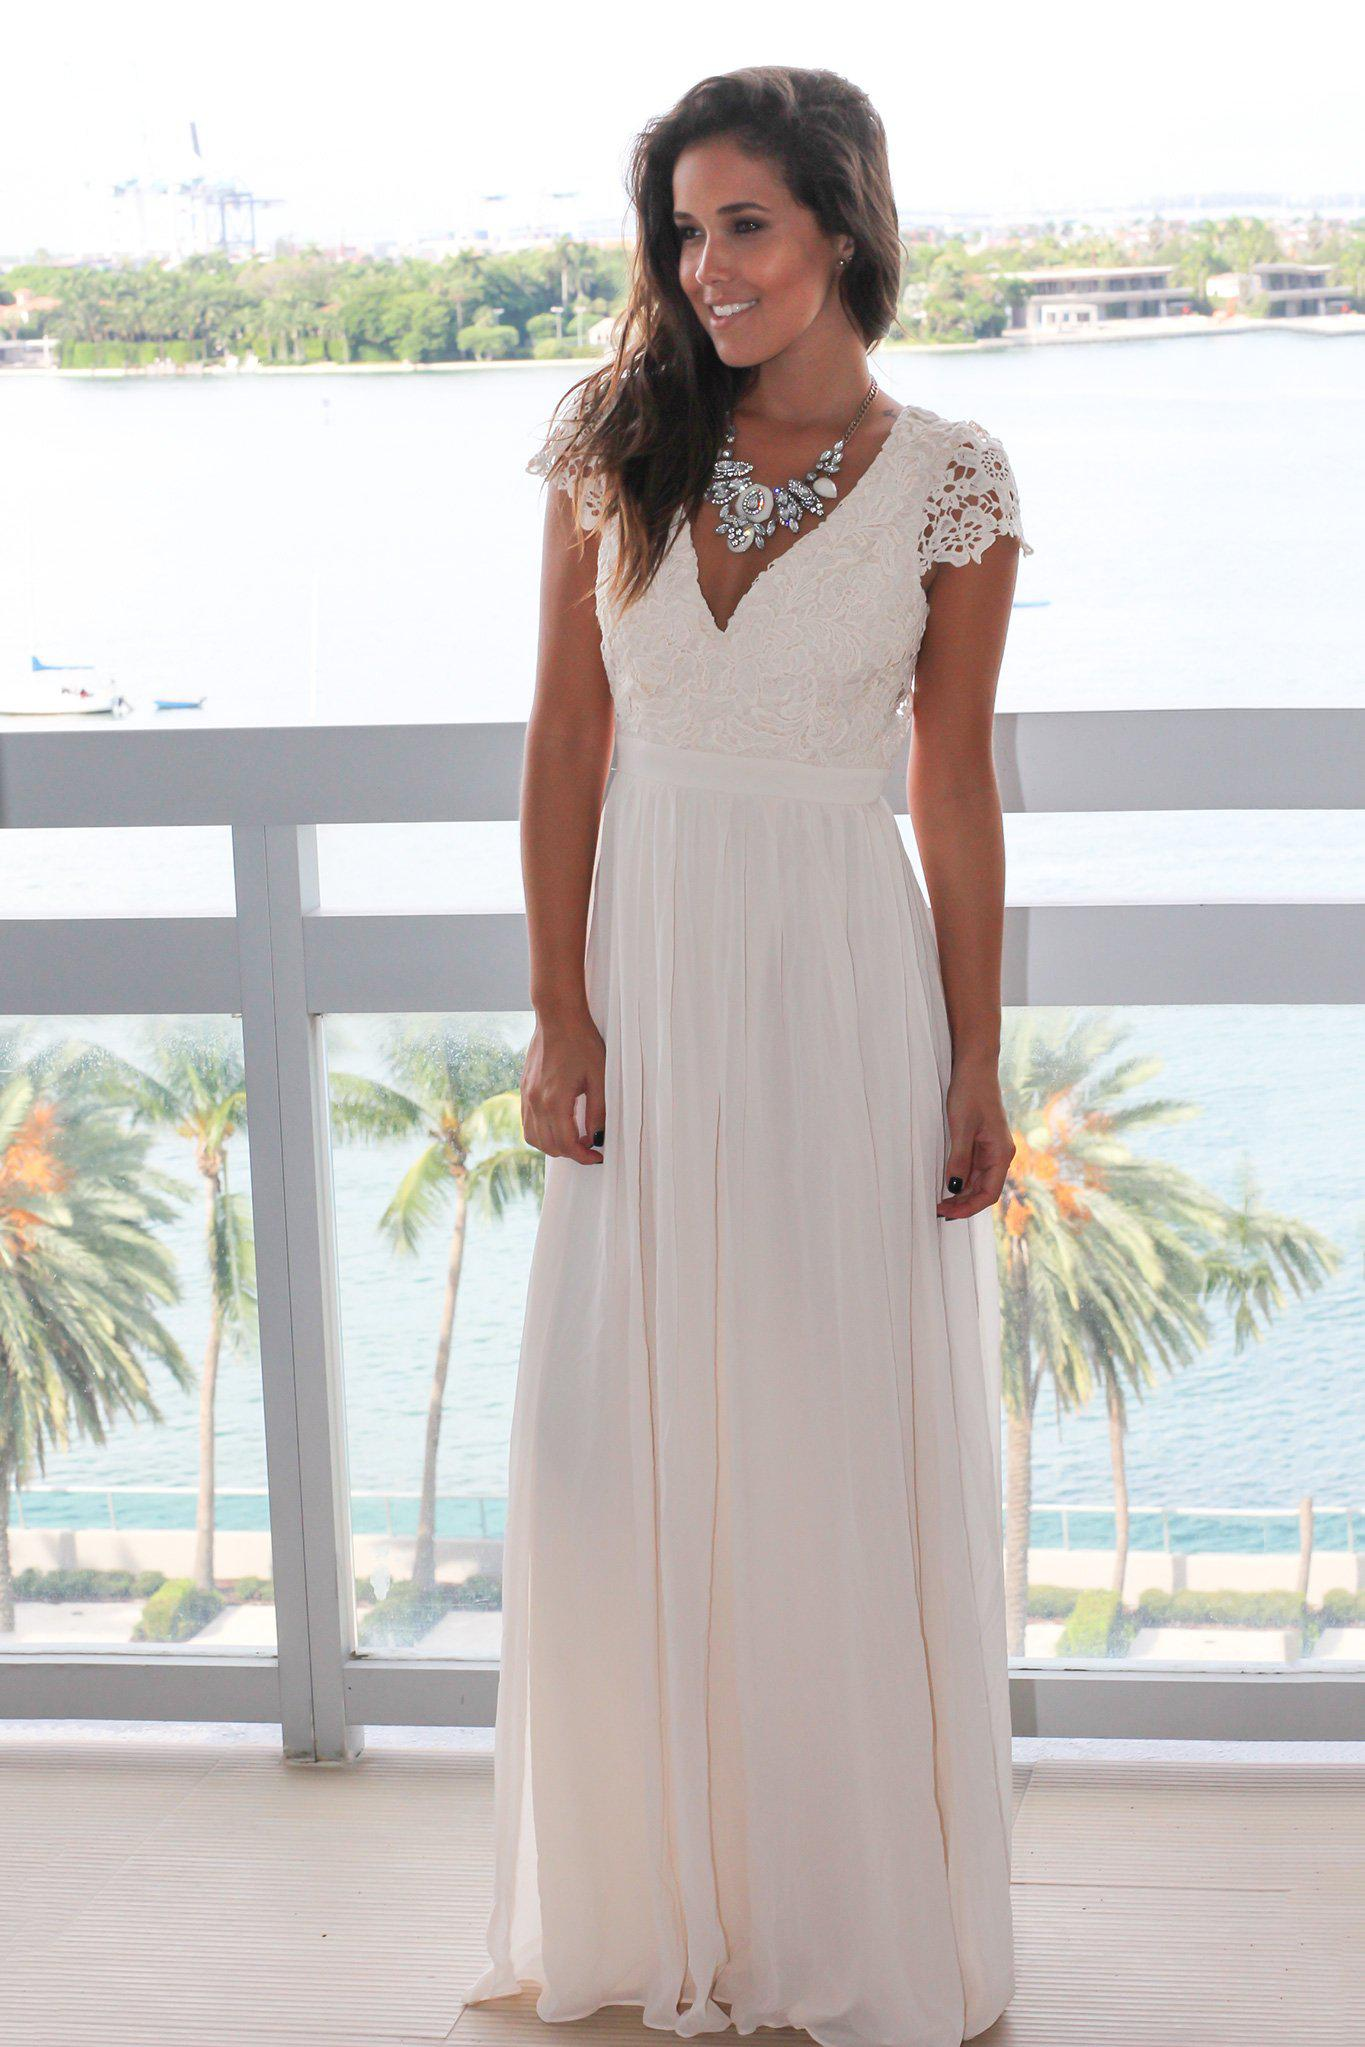 Beige Crochet Top Maxi Dress With Open Back | Maxi Dresses U2013 Saved By The Dress